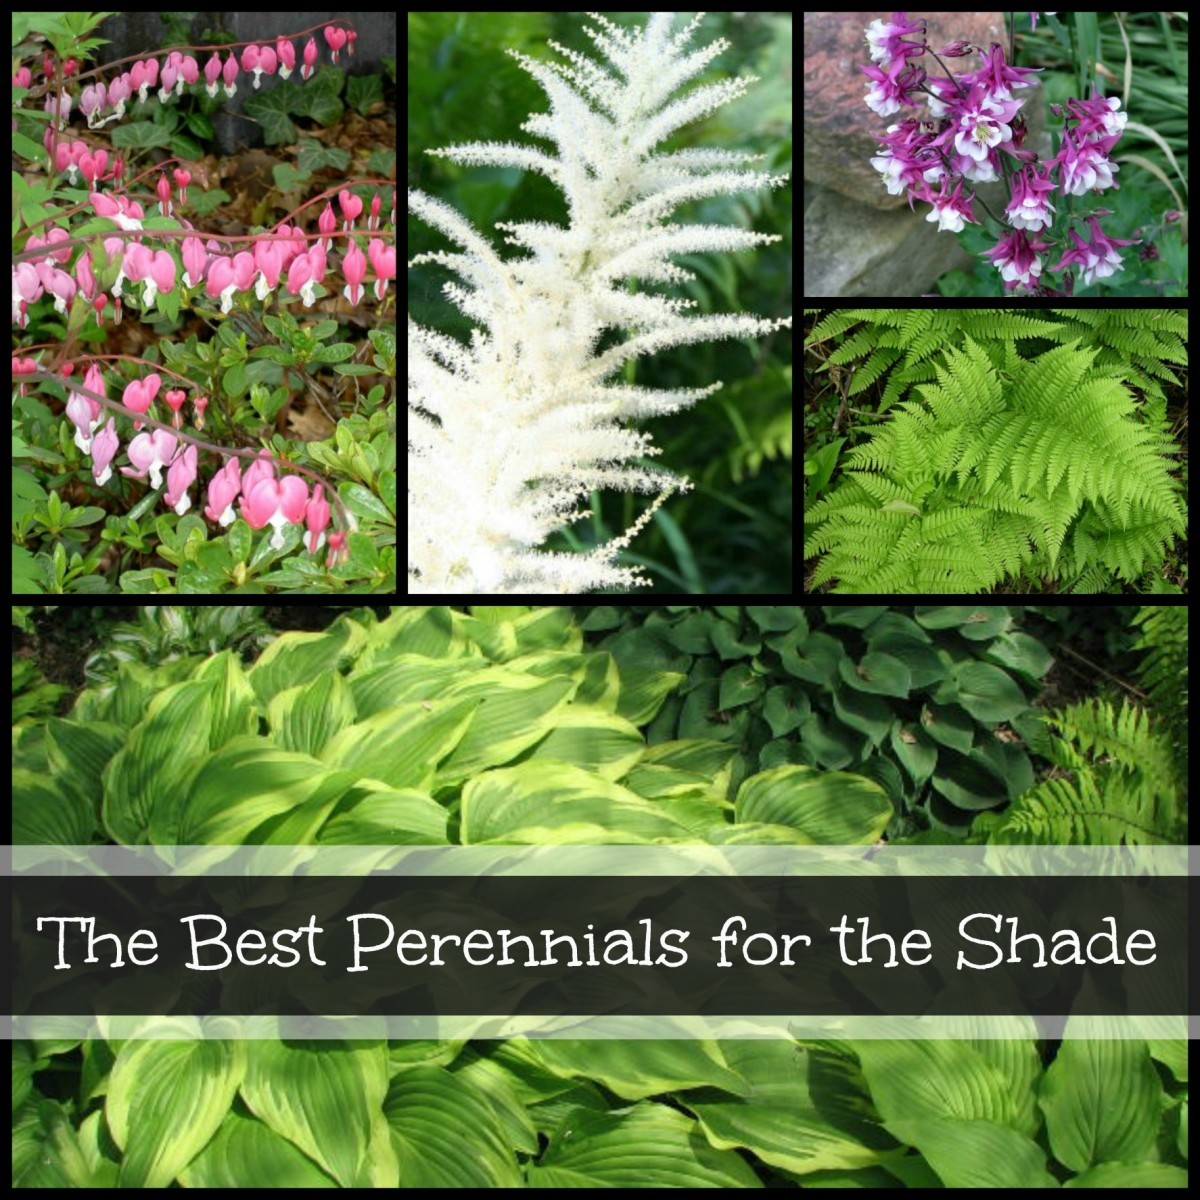 The best perennials for the shade dengarden list of the best perennials for shady gardens mightylinksfo